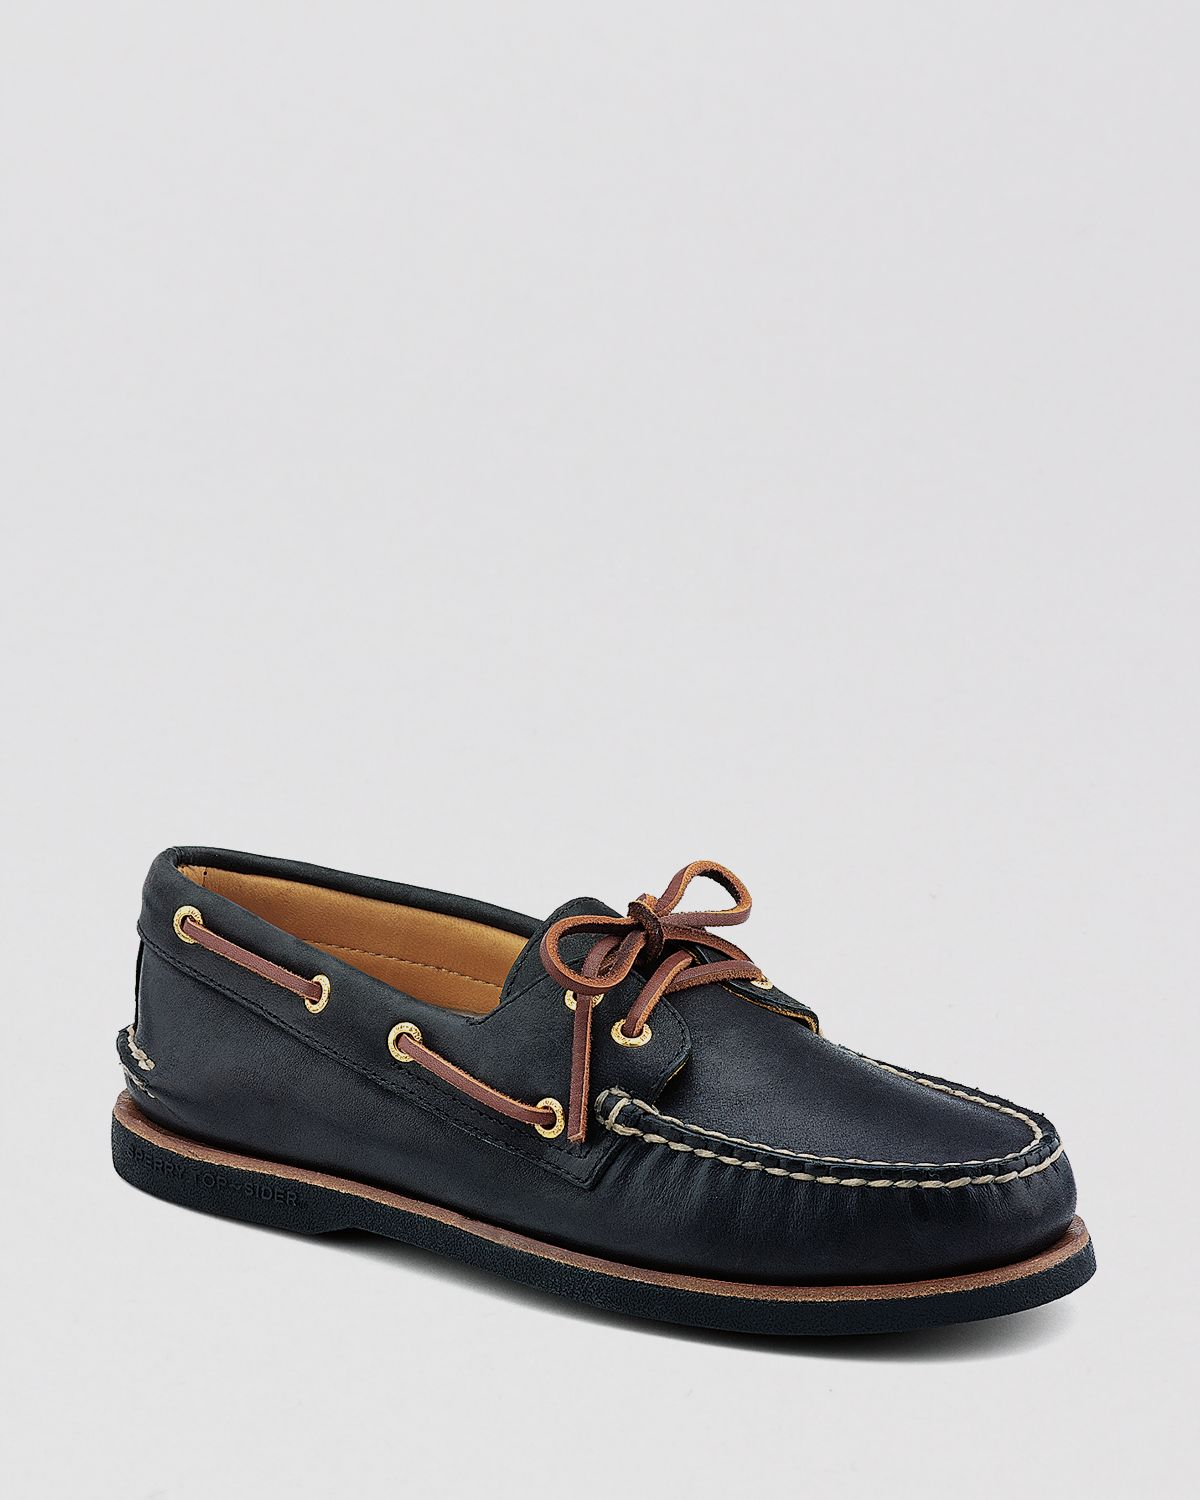 sperry top sider boat shoes gold a o 2 eye lace up in